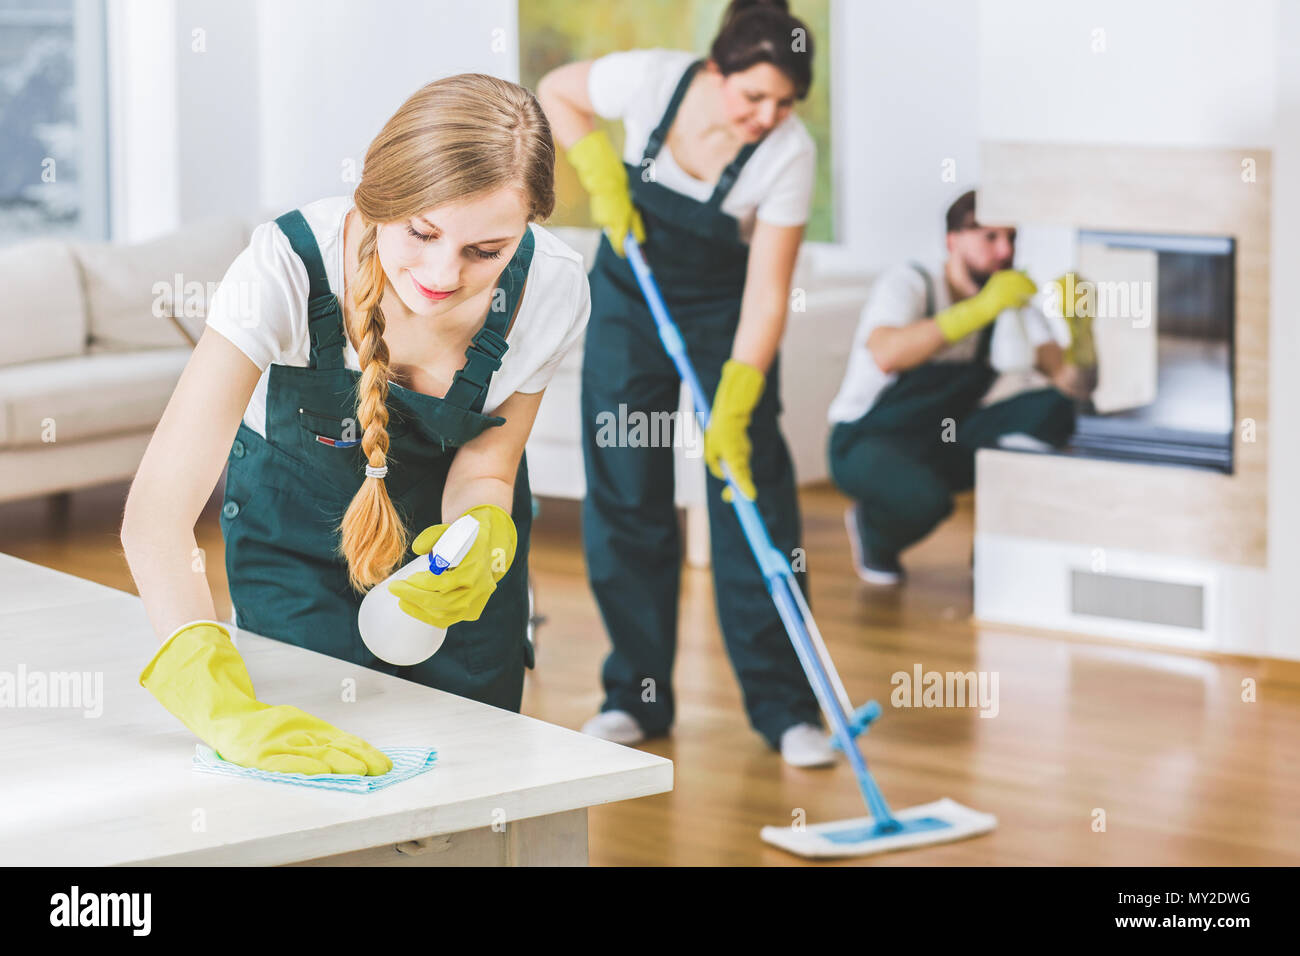 Young member of a cleaning crew wearing green overalls and yellow gloves wiping a white table in apartment interior with the rest of the team in blurr - Stock Image